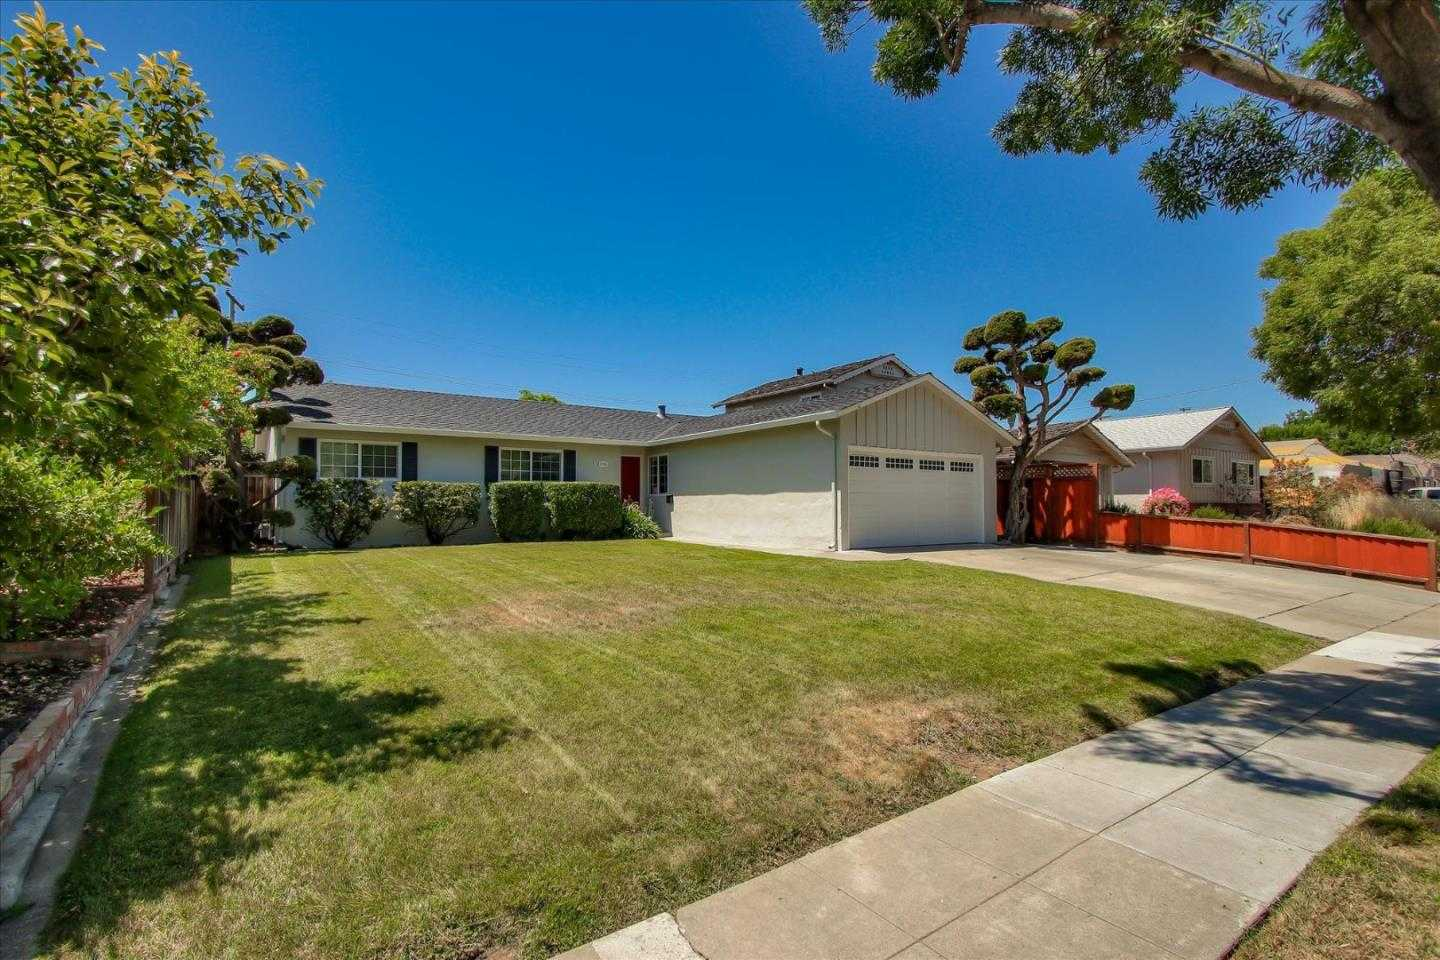 $995,000 - 3Br/2Ba -  for Sale in San Jose